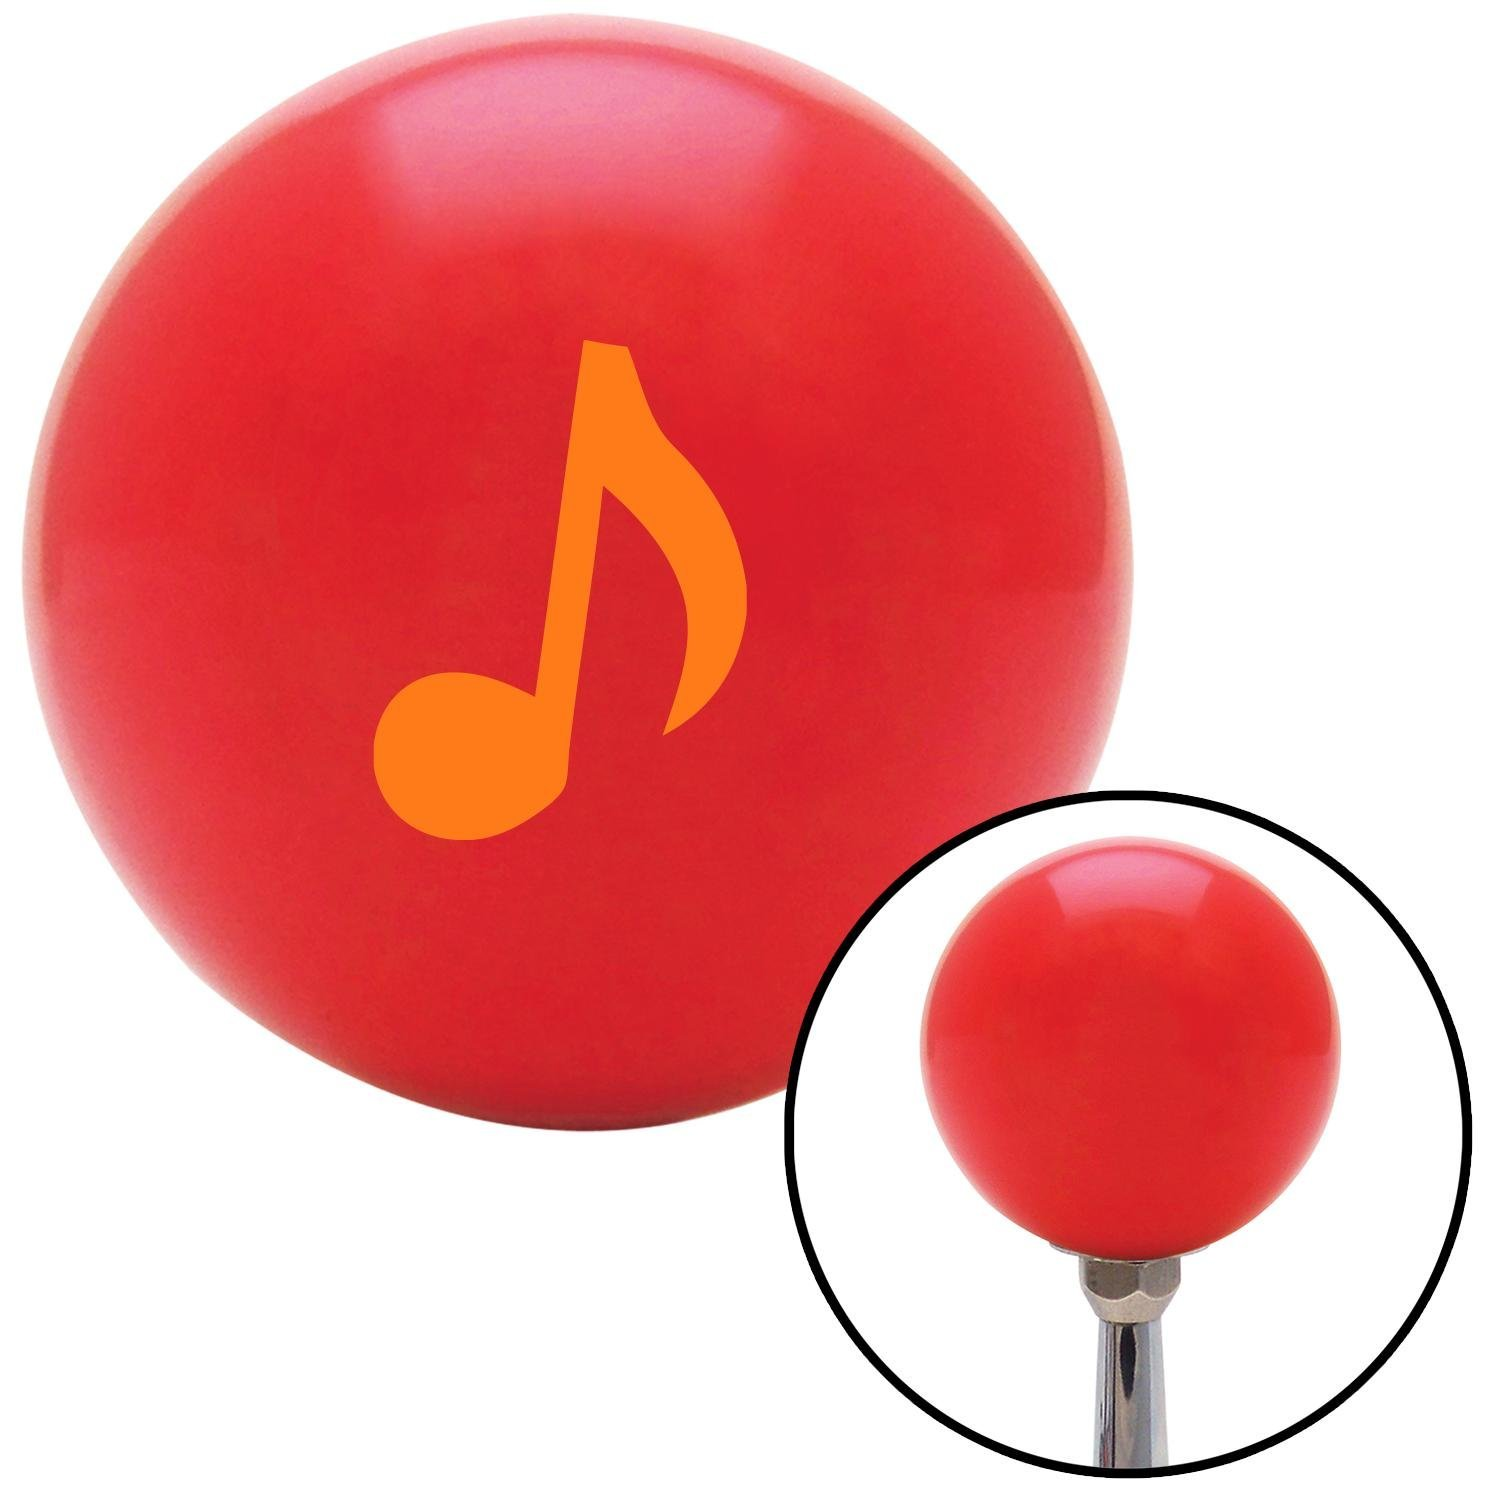 Orange Music Note American Shifter 98598 Red Shift Knob with M16 x 1.5 Insert